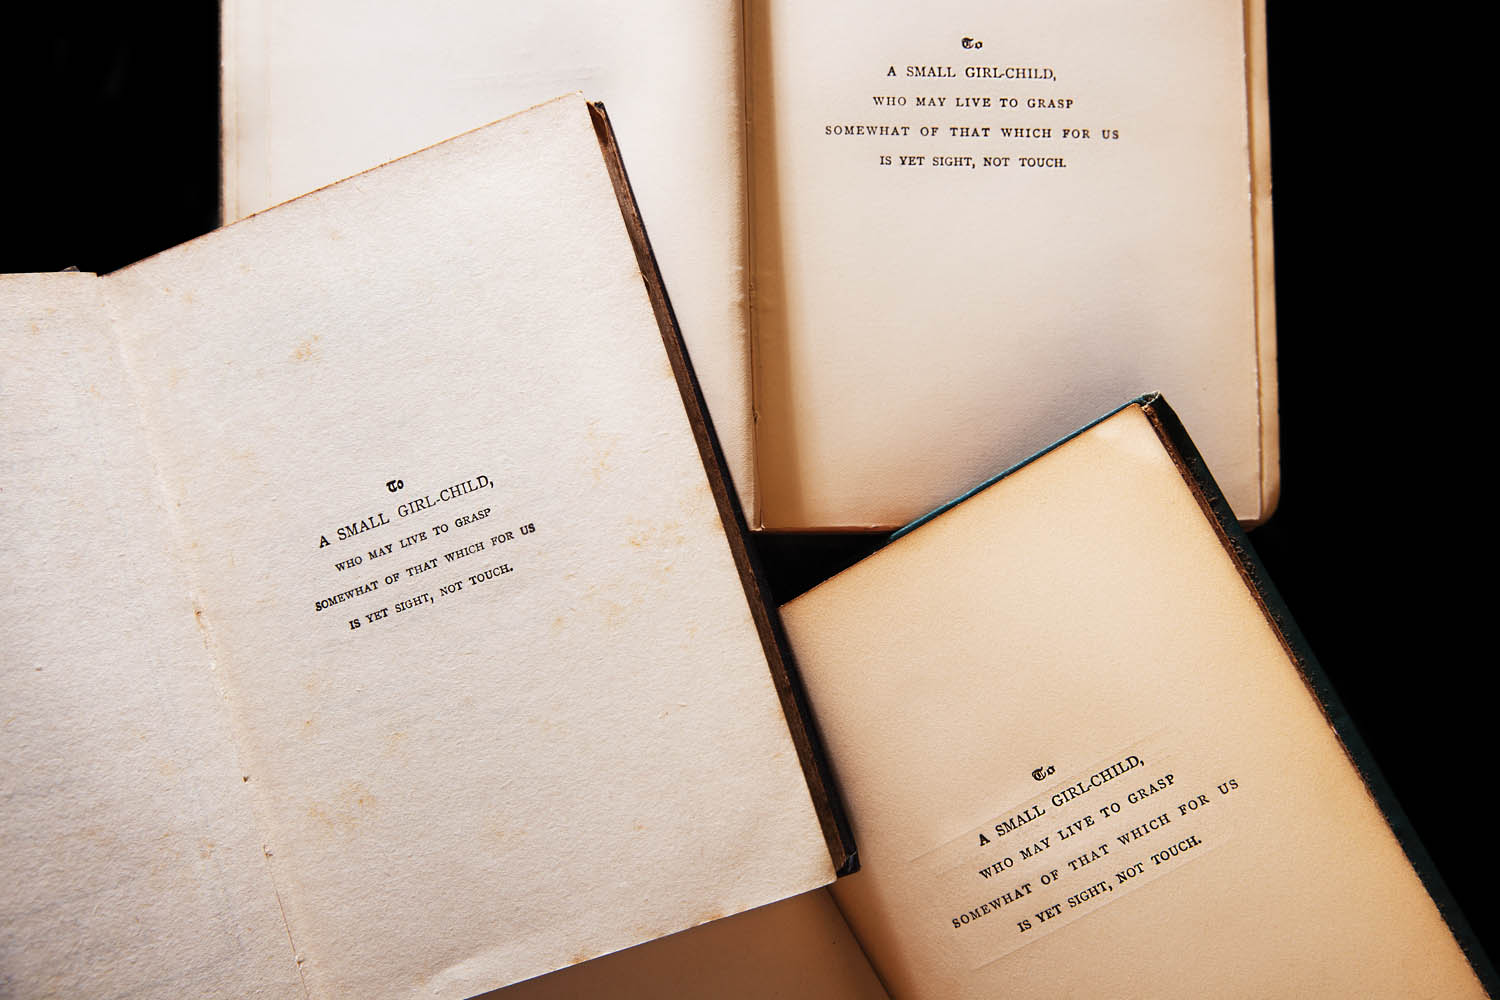 Three different editions of Olive Schreiner's novel Dreams. Photographed by Jo Emmerson